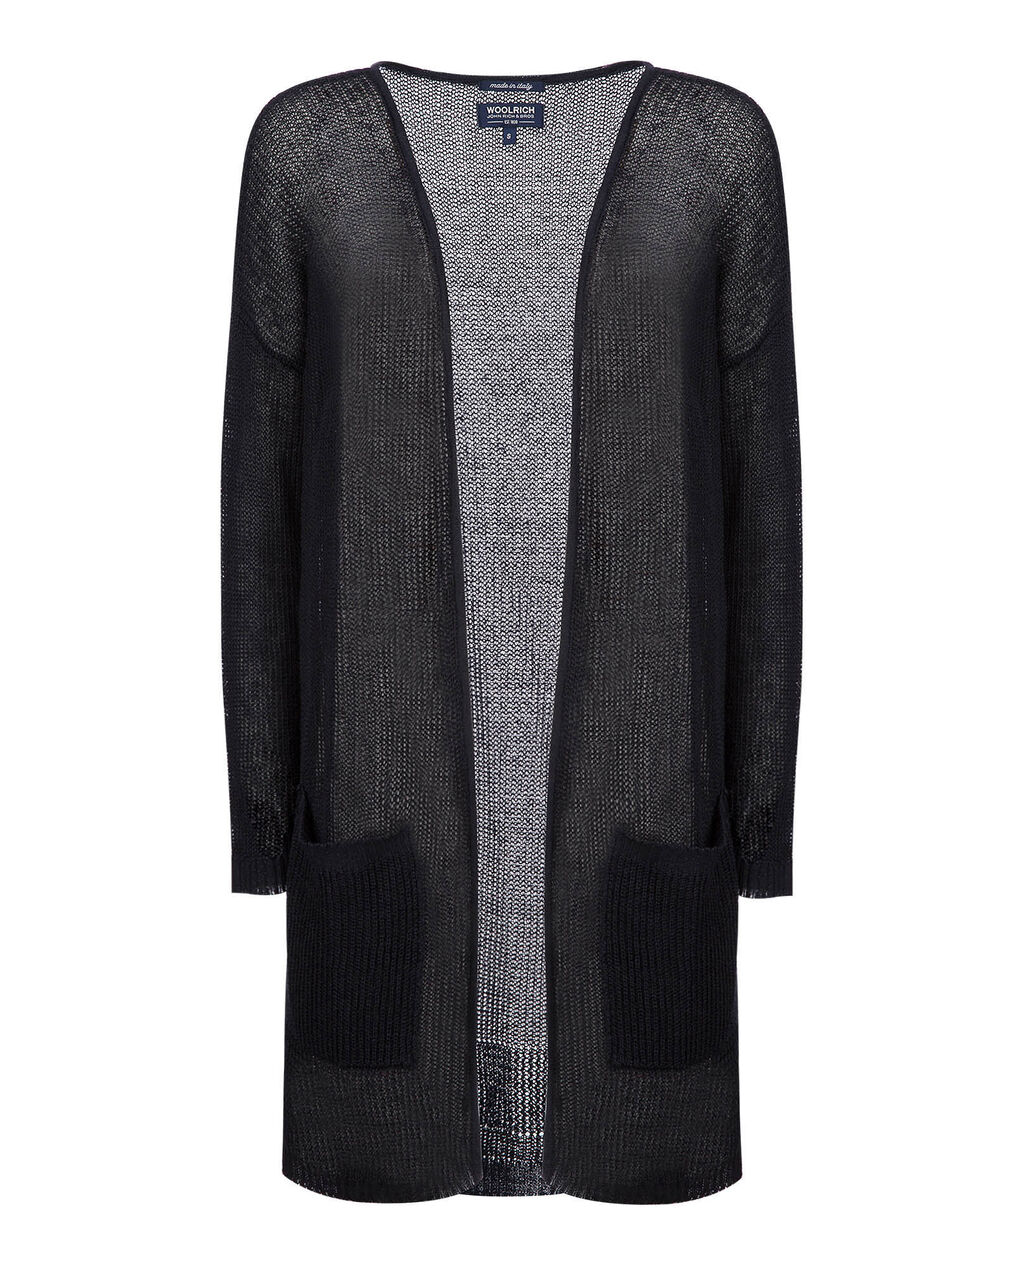 W'S Linen Cardigan, NIGHT SKY, hi-res